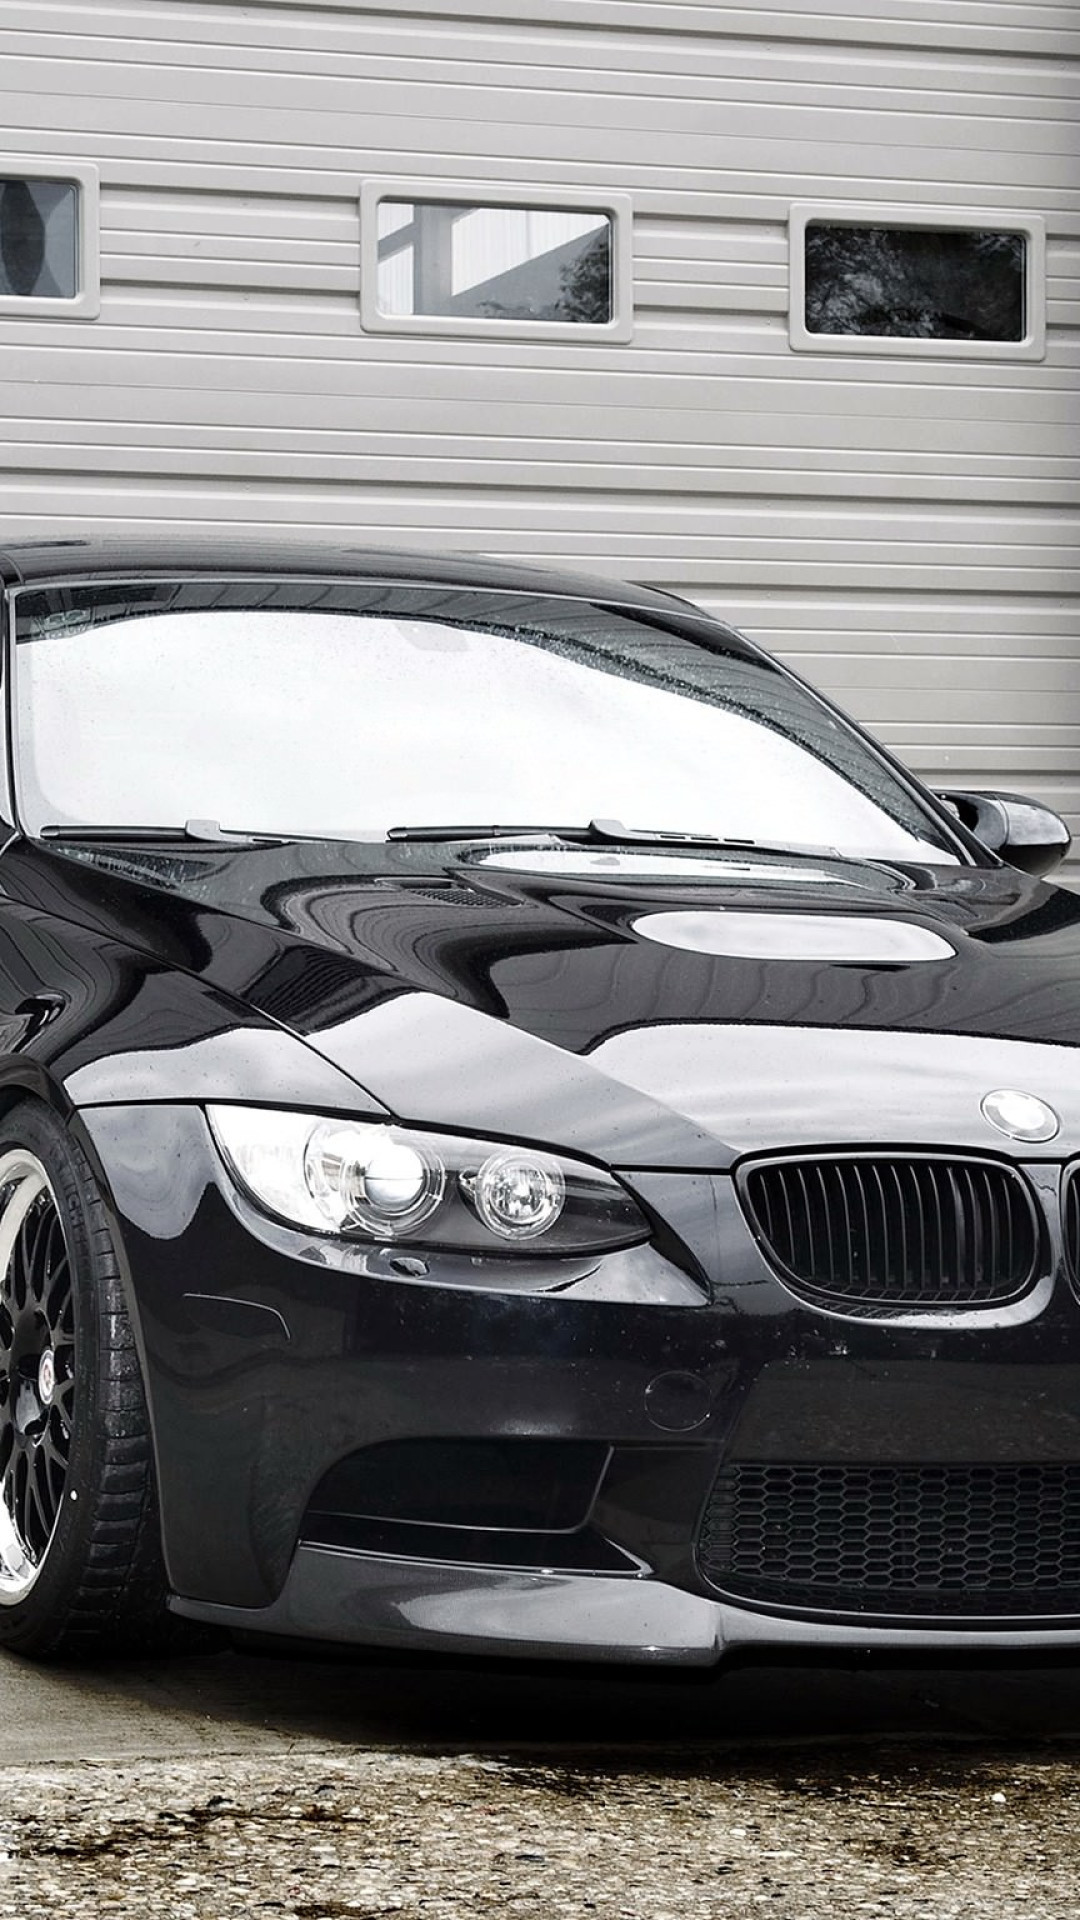 Bmw M3 E92 Black Wallpaper Iphone 6 Plus Resolution Iphone Wallpaper Bmw E92 1080x1920 Download Hd Wallpaper Wallpapertip